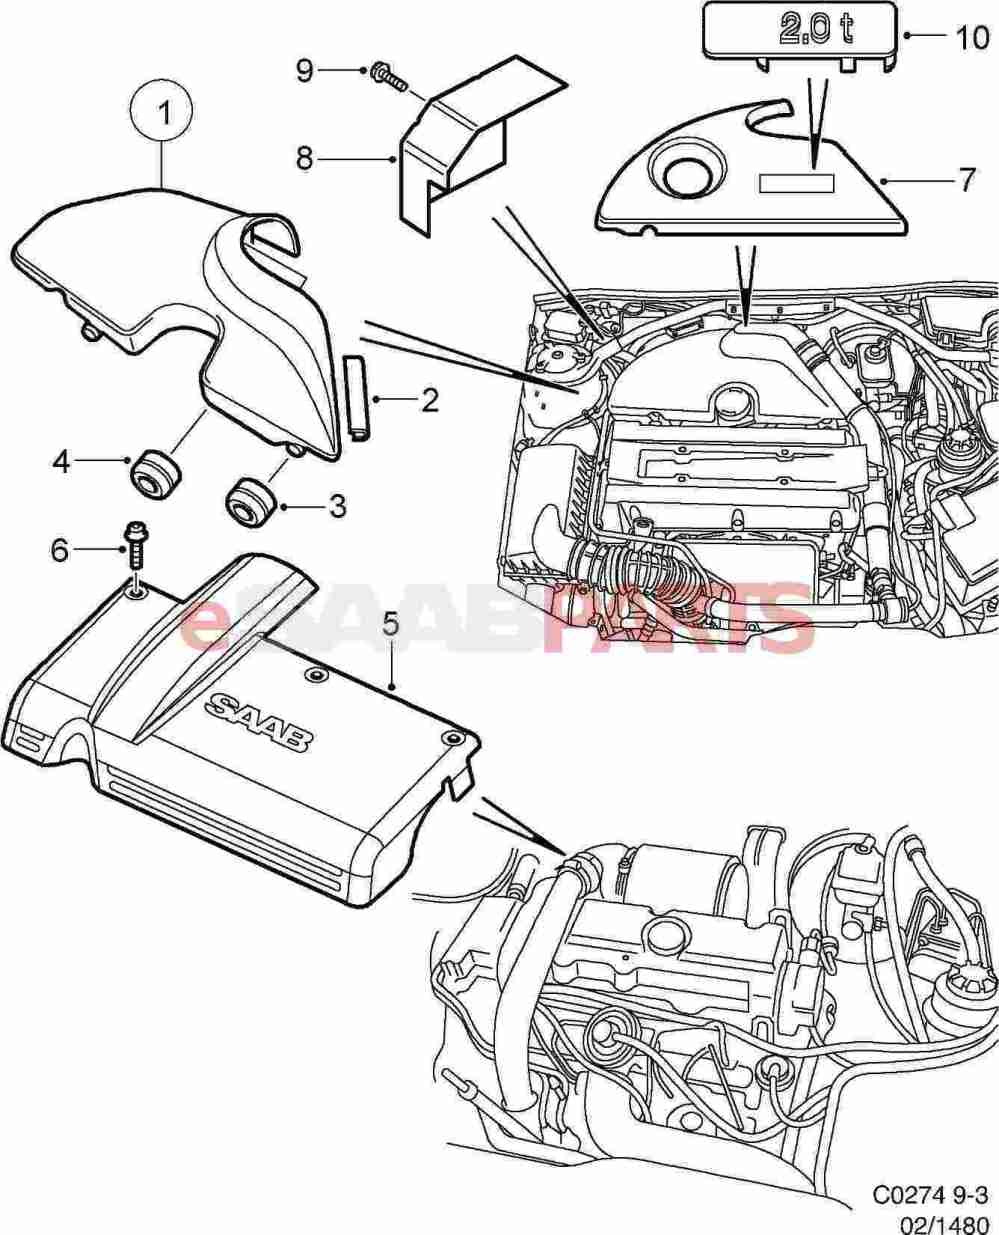 medium resolution of 2002 saab 9 3 parts diagram wiring diagram schematics rh ksefanzone com saab 9 3